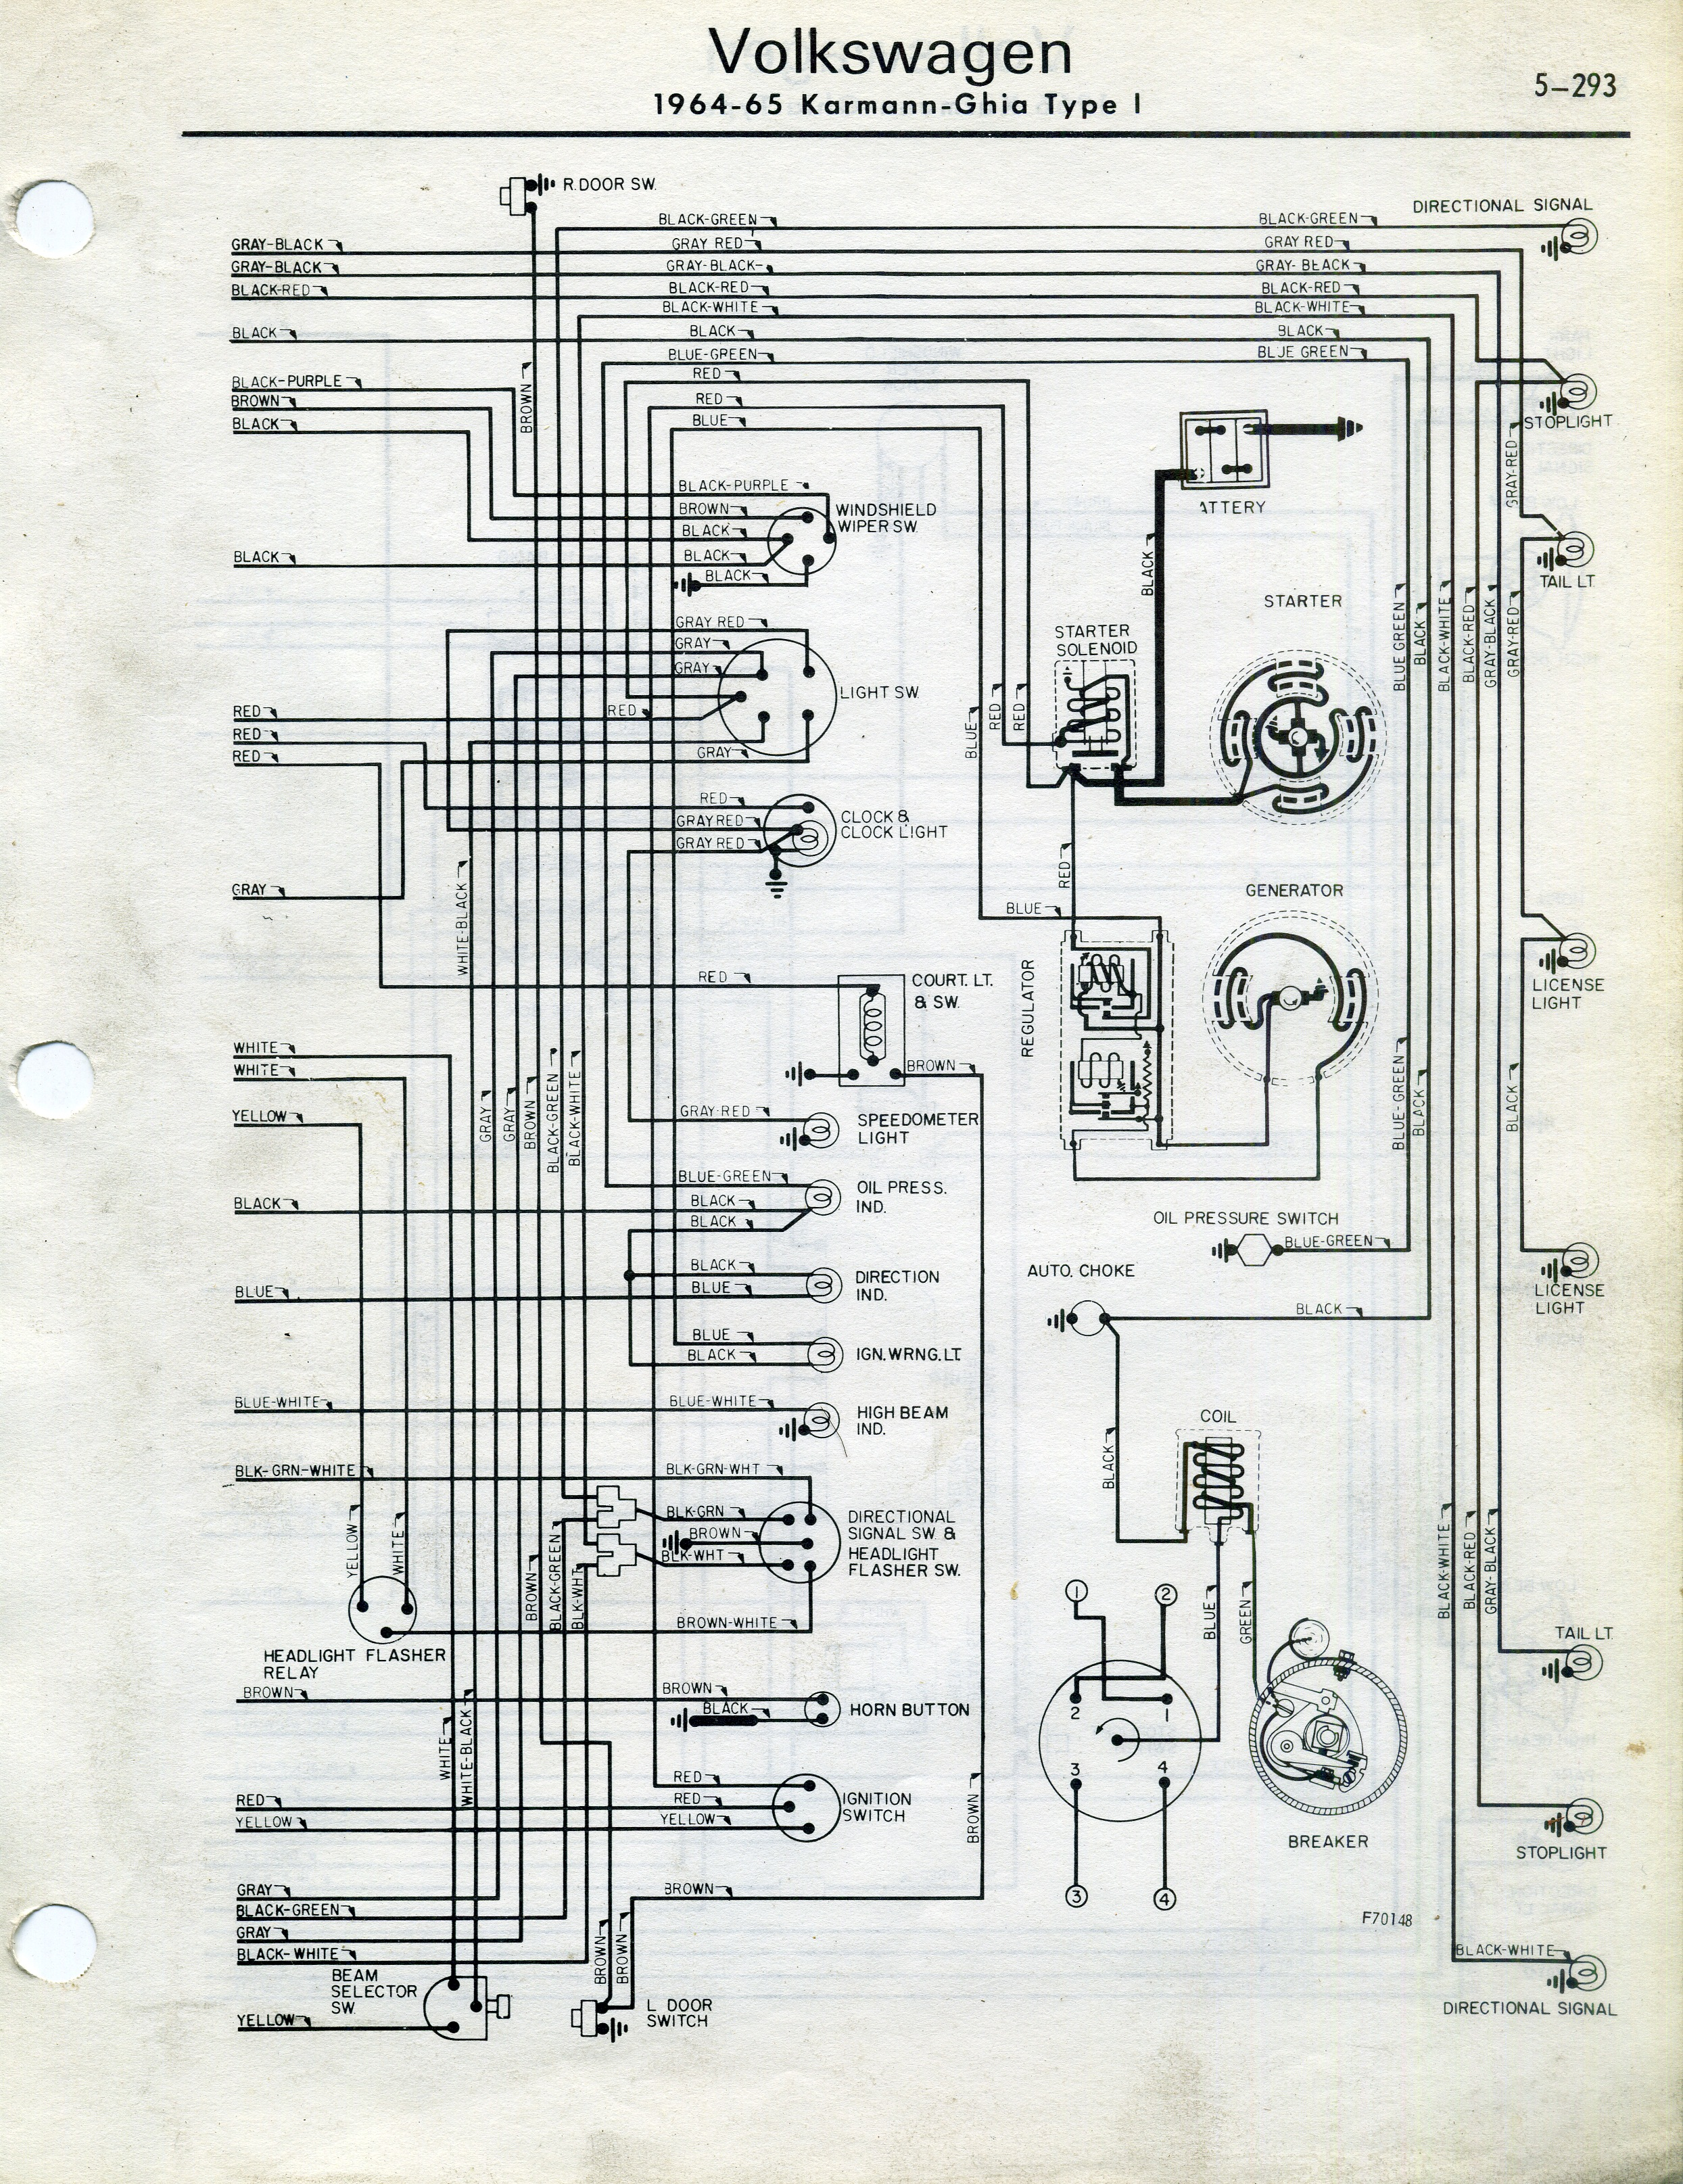 ghia wiring diagram thesamba.com :: karmann ghia wiring diagrams 1973 vw karmann ghia wiring diagram